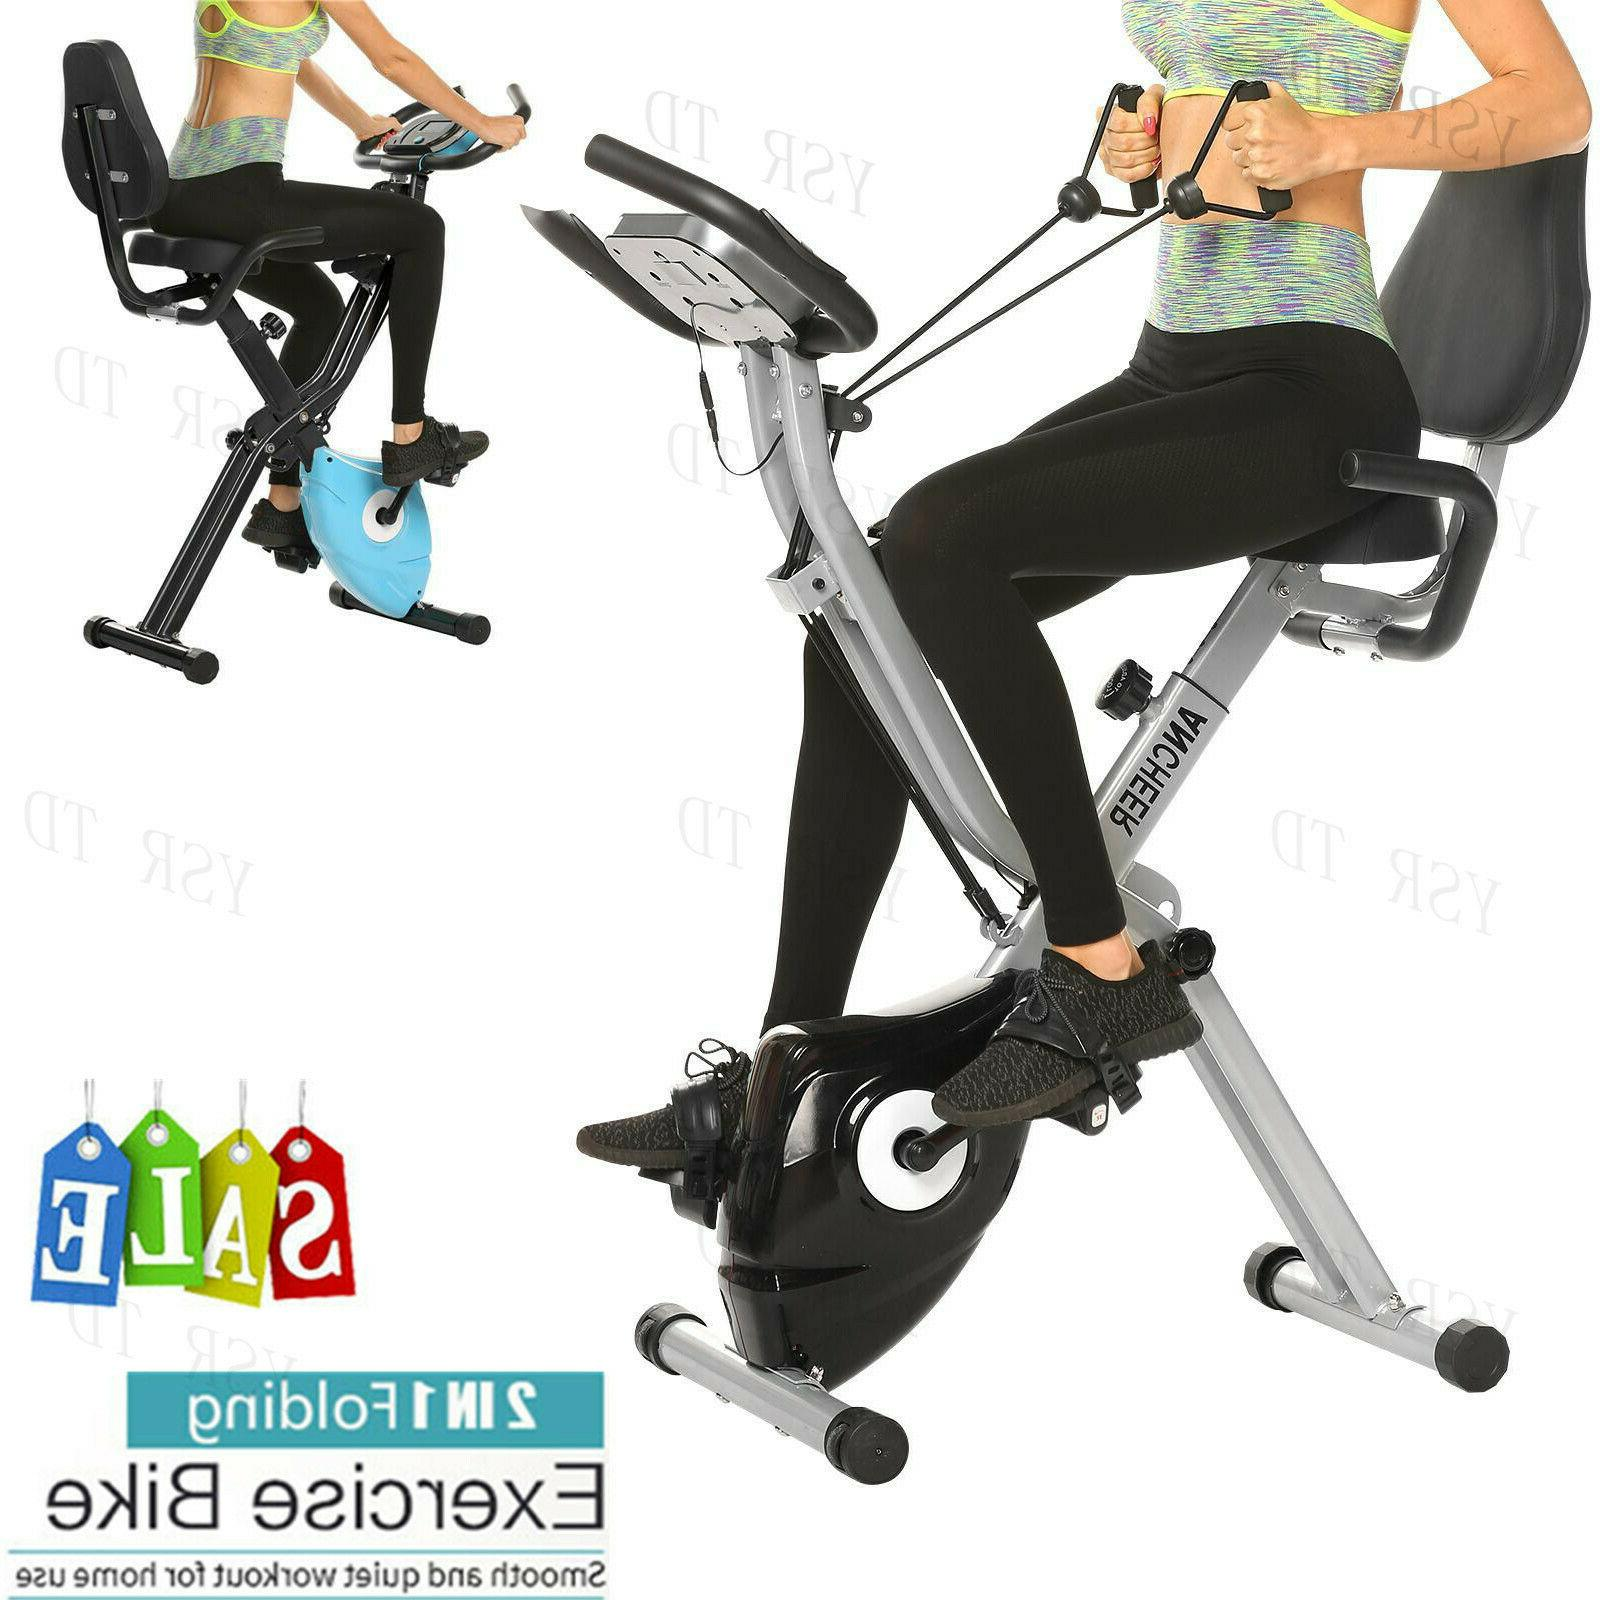 Ancheer 7-Type Exercise Bikes Stationary Training Indoor Hea